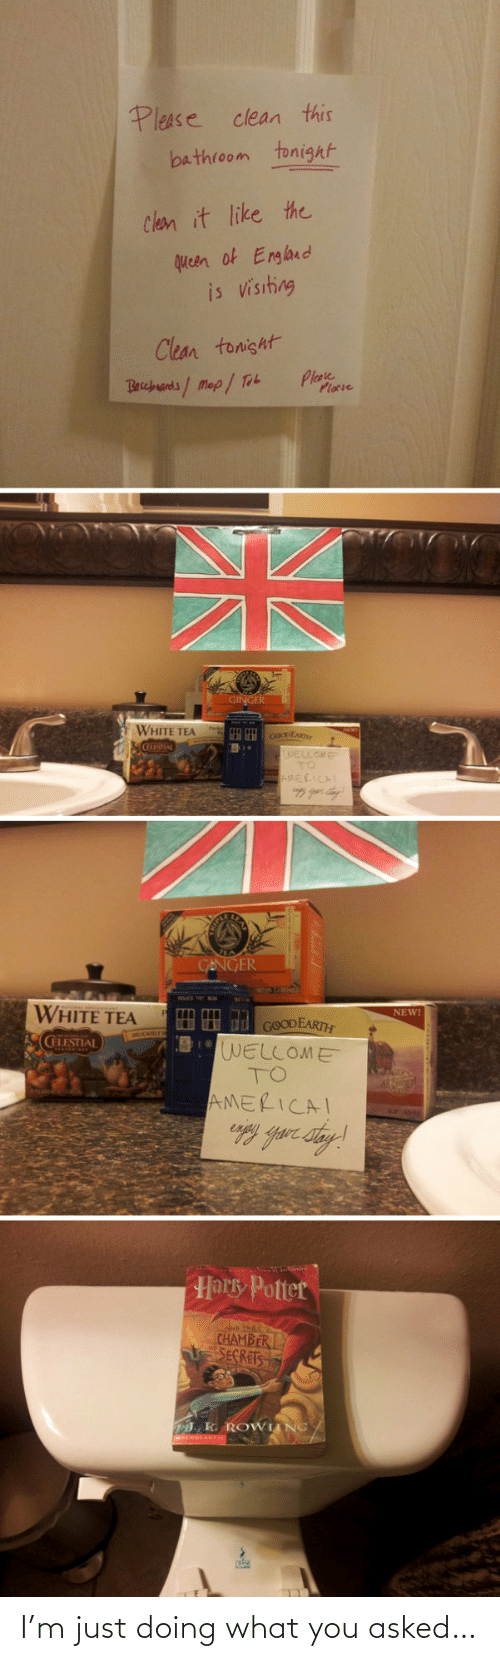 England: Please clean this  bathroom tonight  Clean it like the  queen of England  is visiting  Clean tonisht  Plase  Plocie  Becbuands/Map/ Tob  GINGER  WHITE TEA  cOoDEAR  WELLOME  TO  AMERICAL  GENGER  WHITE TEA  NEW!  HH d GOODEARTH  WELLOME  TO  CELESTIAL  AMERICAI  Harky Potter  D THE  CHAMBER  SECRETS  . K. ROWIING/ I'm just doing what you asked…